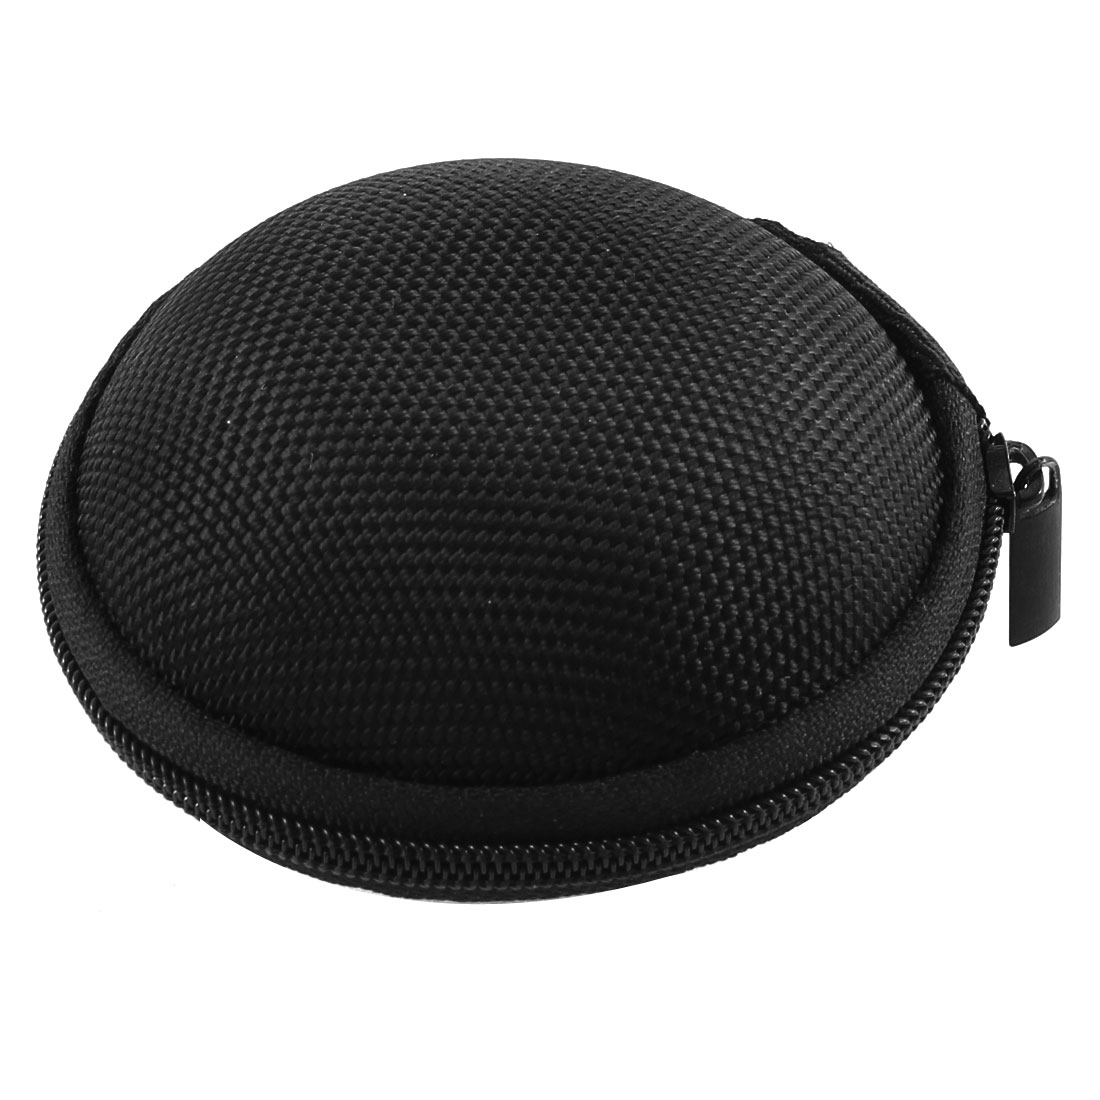 Earphone Headphone Carrying Hard Hold Case Storage Bag Box Pocket Black